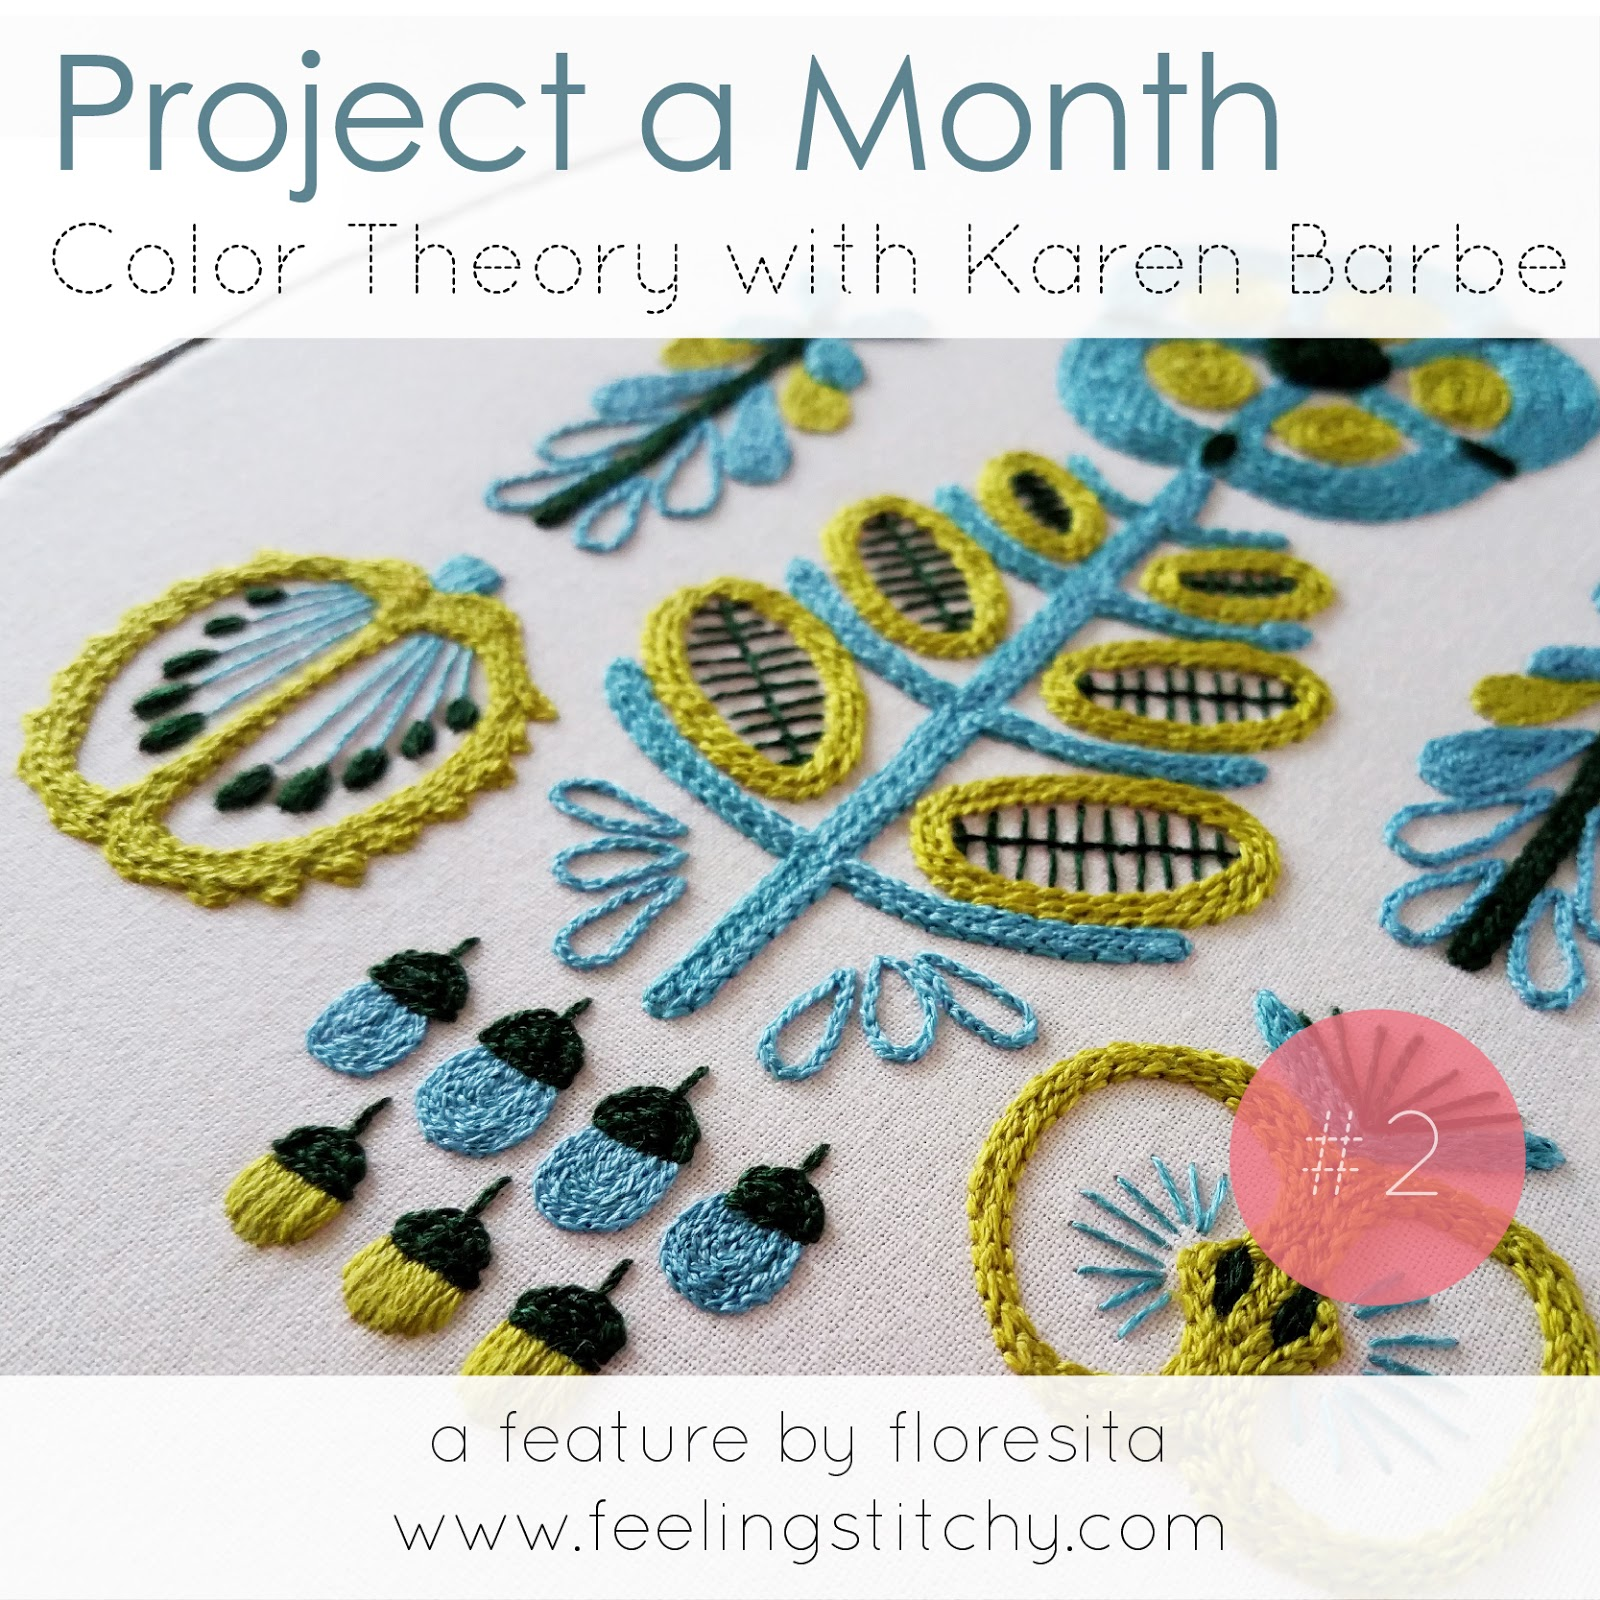 Project a Month February Color Theory with Karen Barbe a feature by floresita on Feeling Stitchy